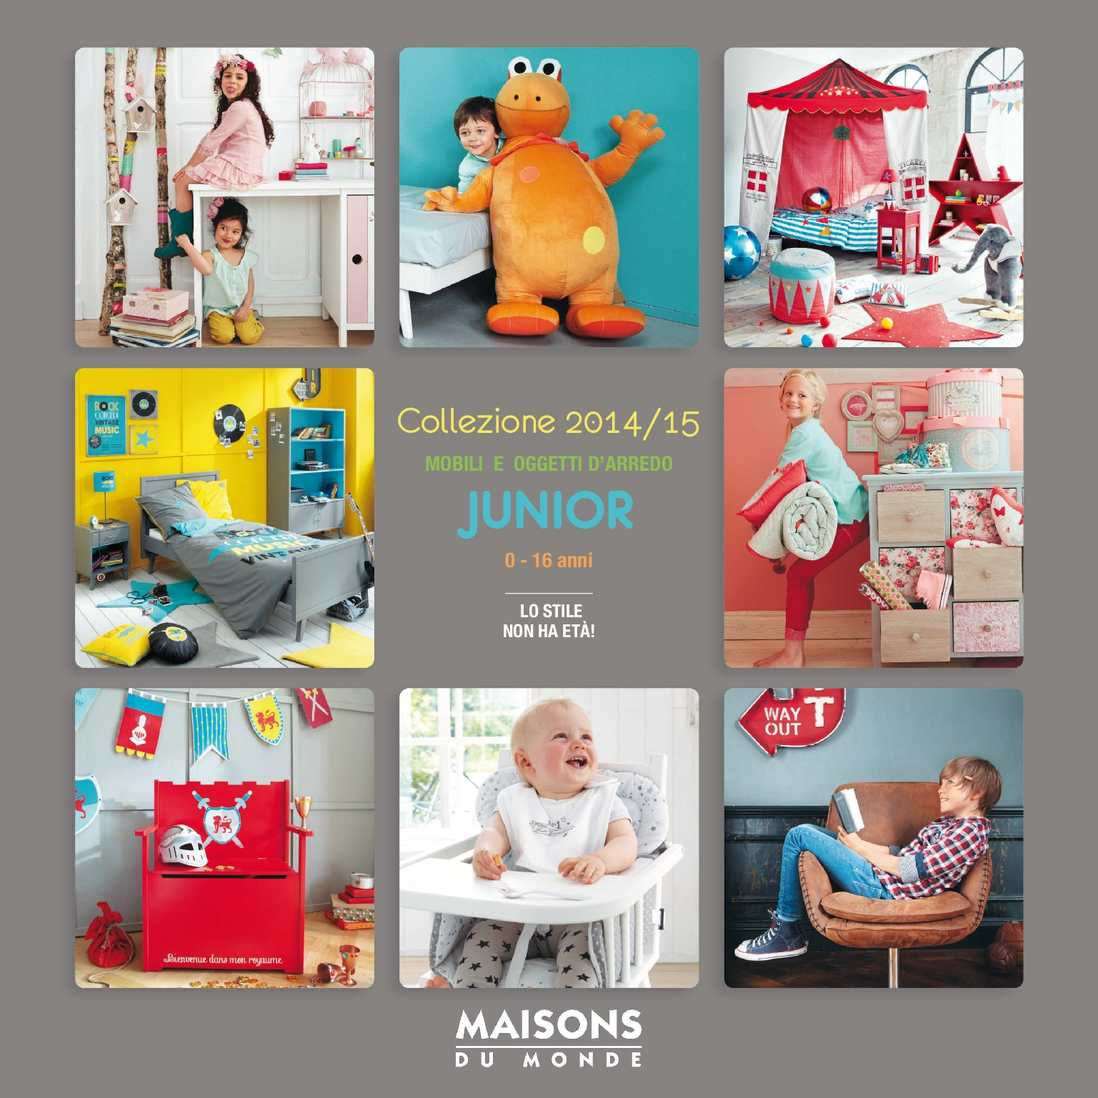 calam o catalogo maison du monde junior 2014 2015. Black Bedroom Furniture Sets. Home Design Ideas